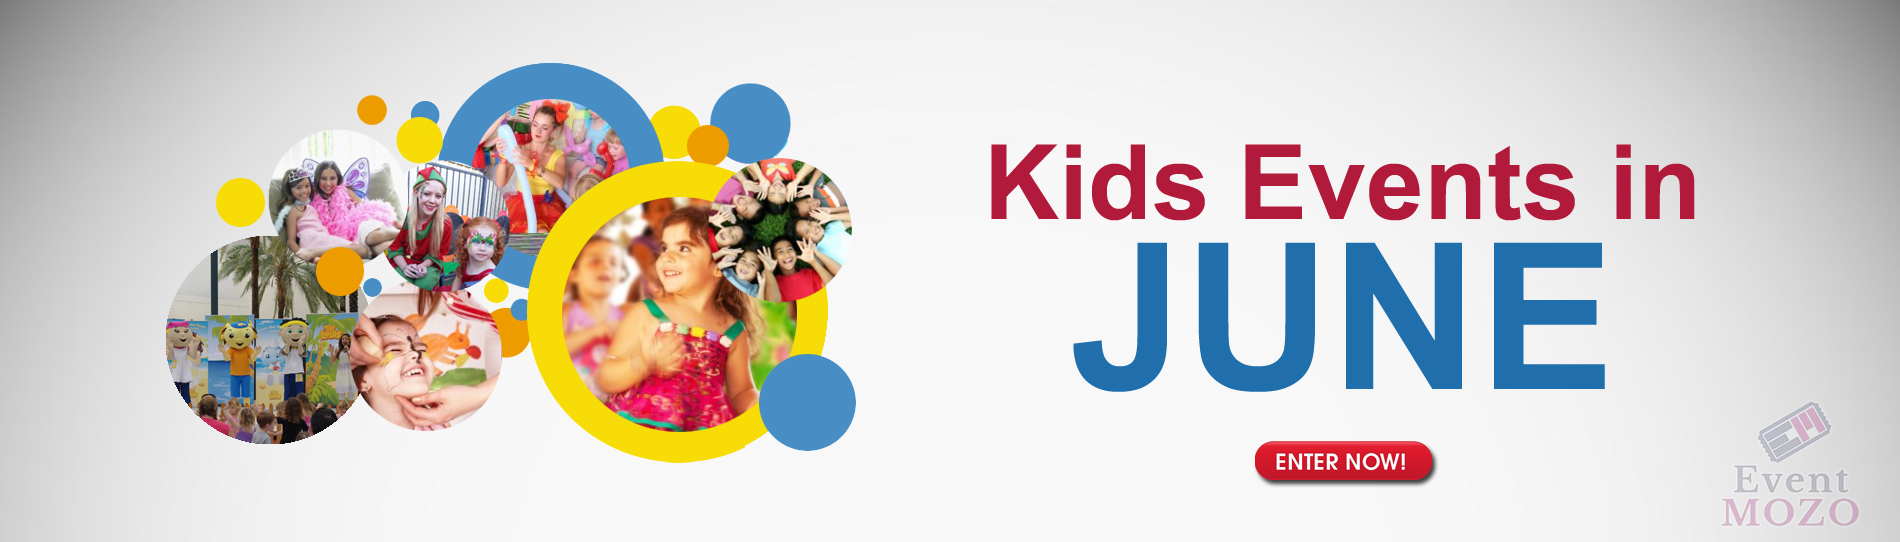 EventMozo Kids Events In June